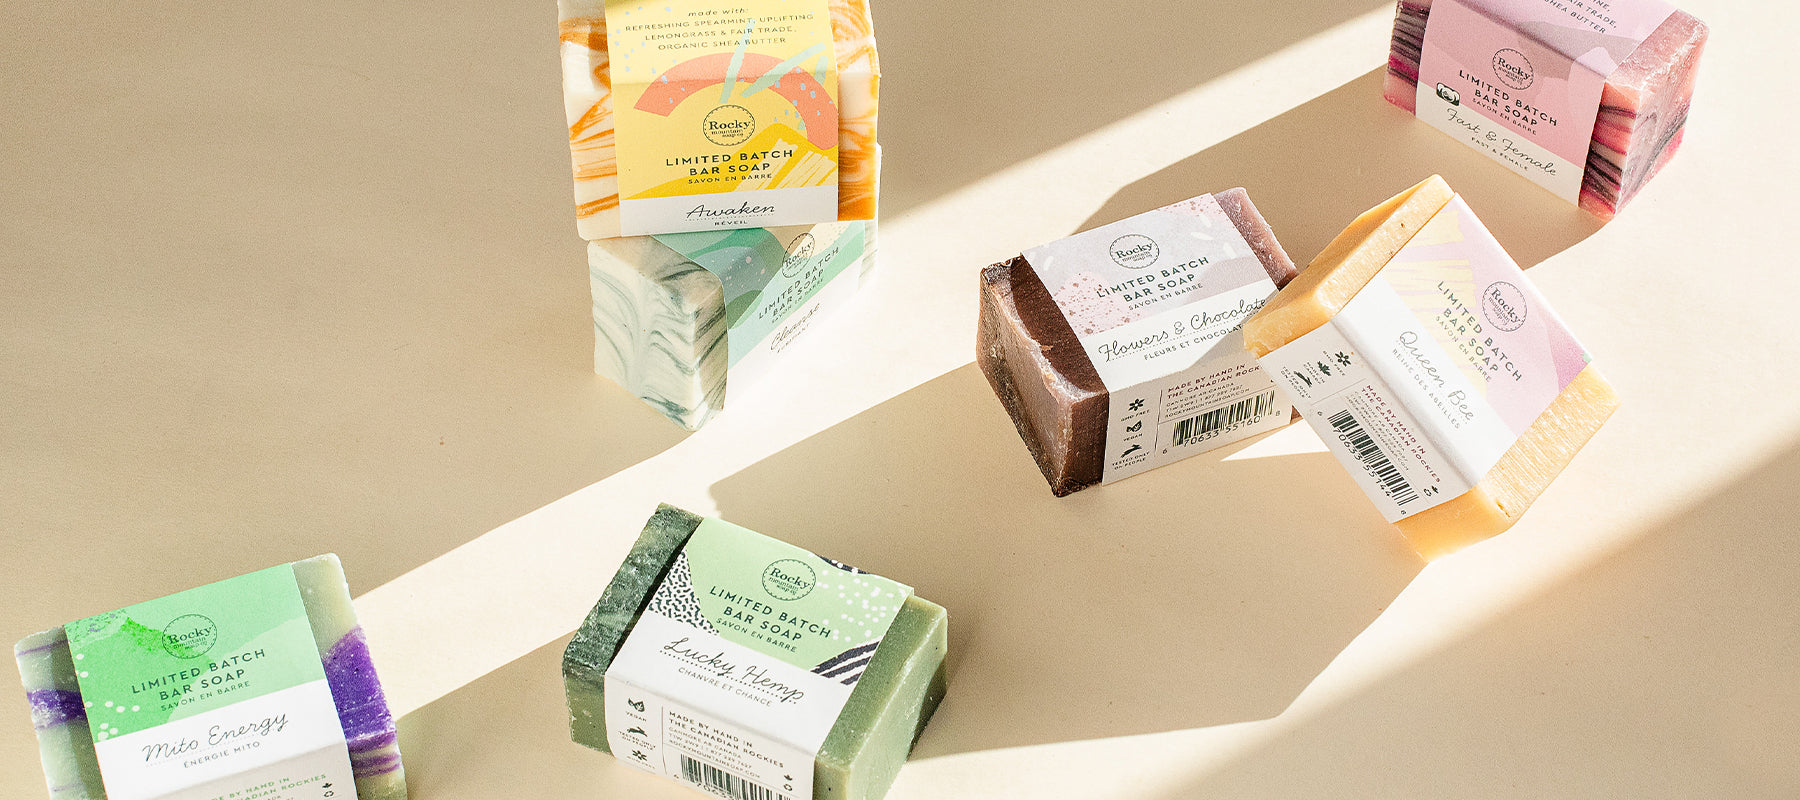 All natural bar soaps from Rocky mountain soap company.